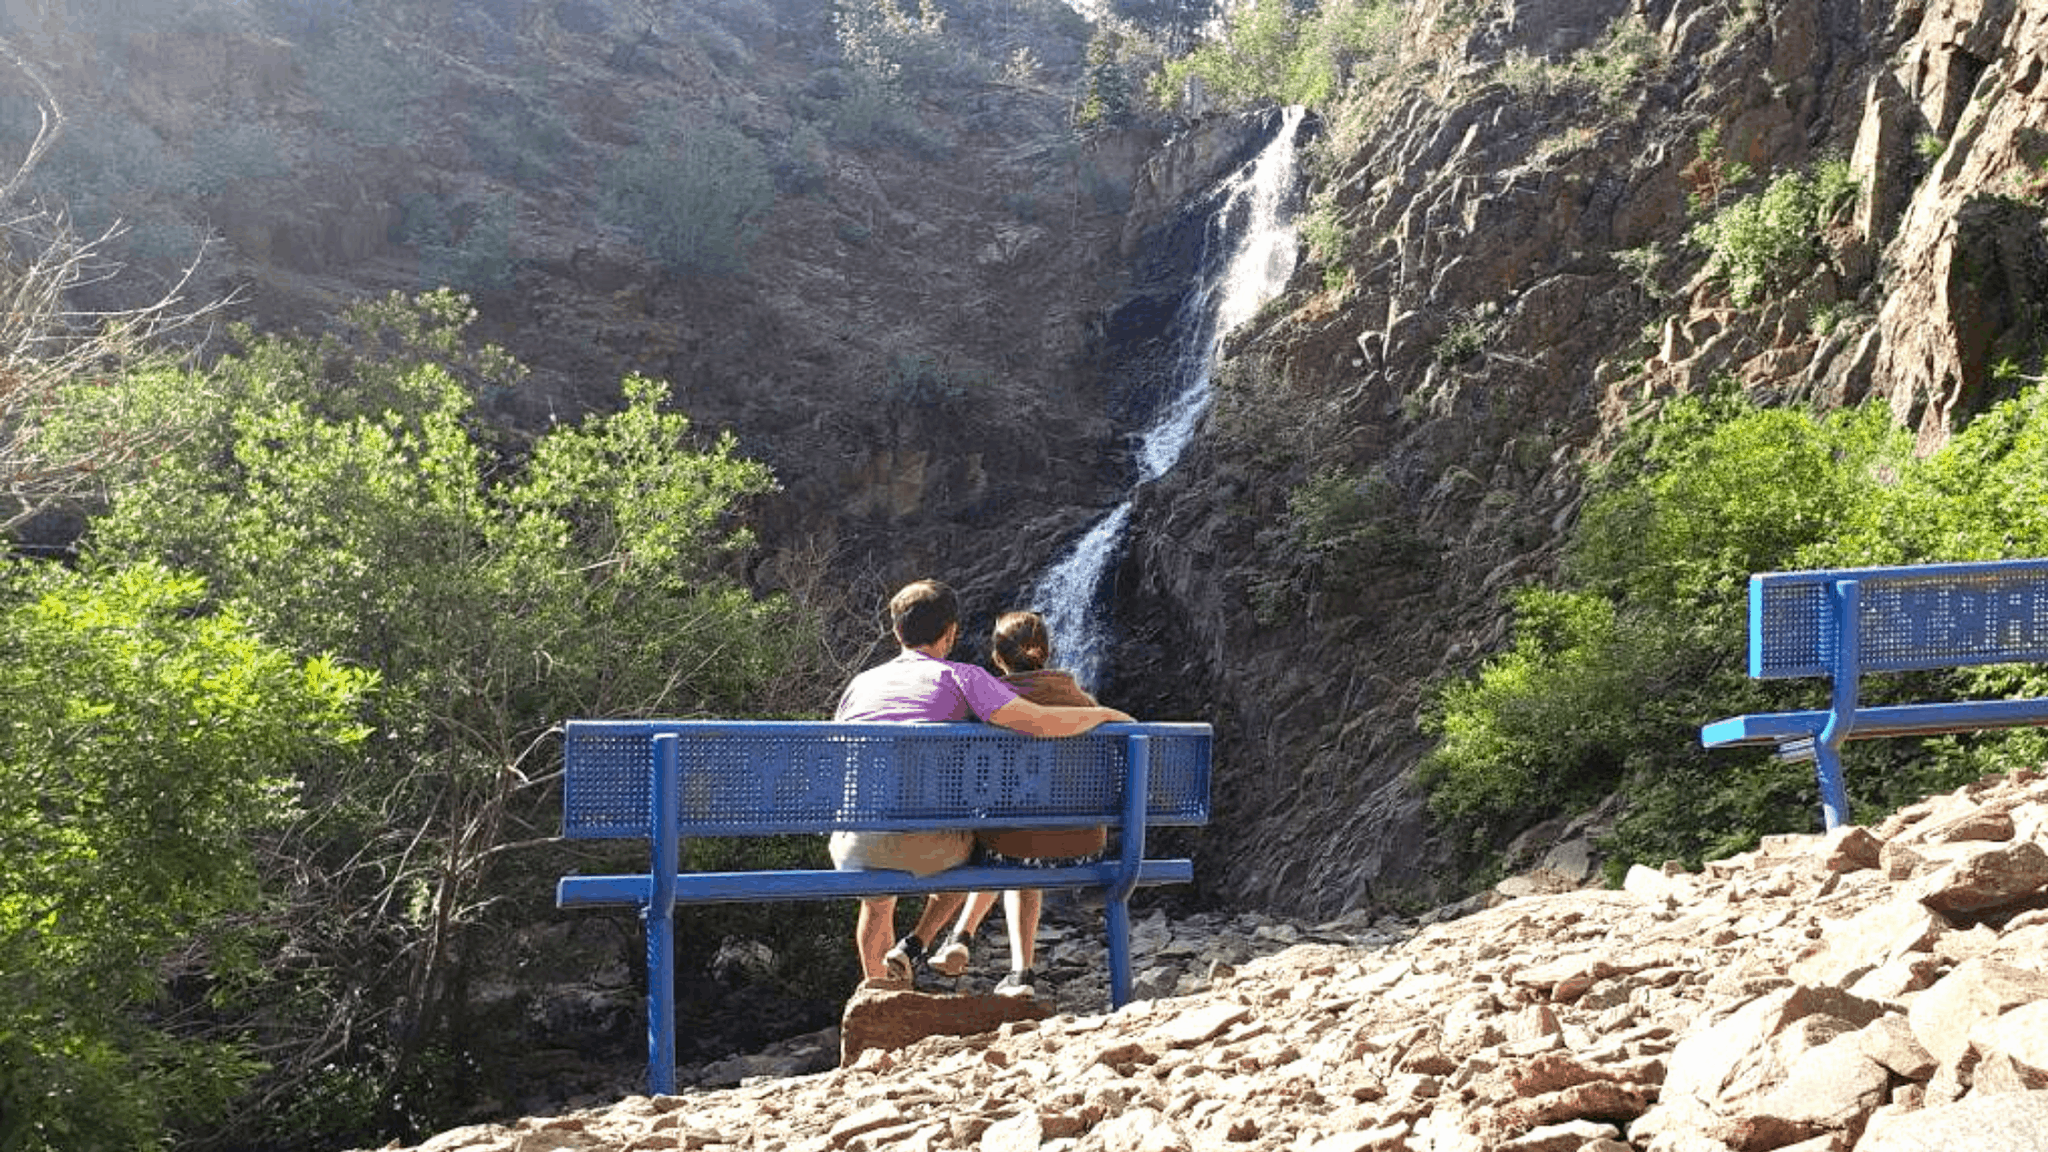 Having a Picnic lunch beneath The Garden Creek Falls is perhaps the most romantic thing to do in Casper, Wyoming